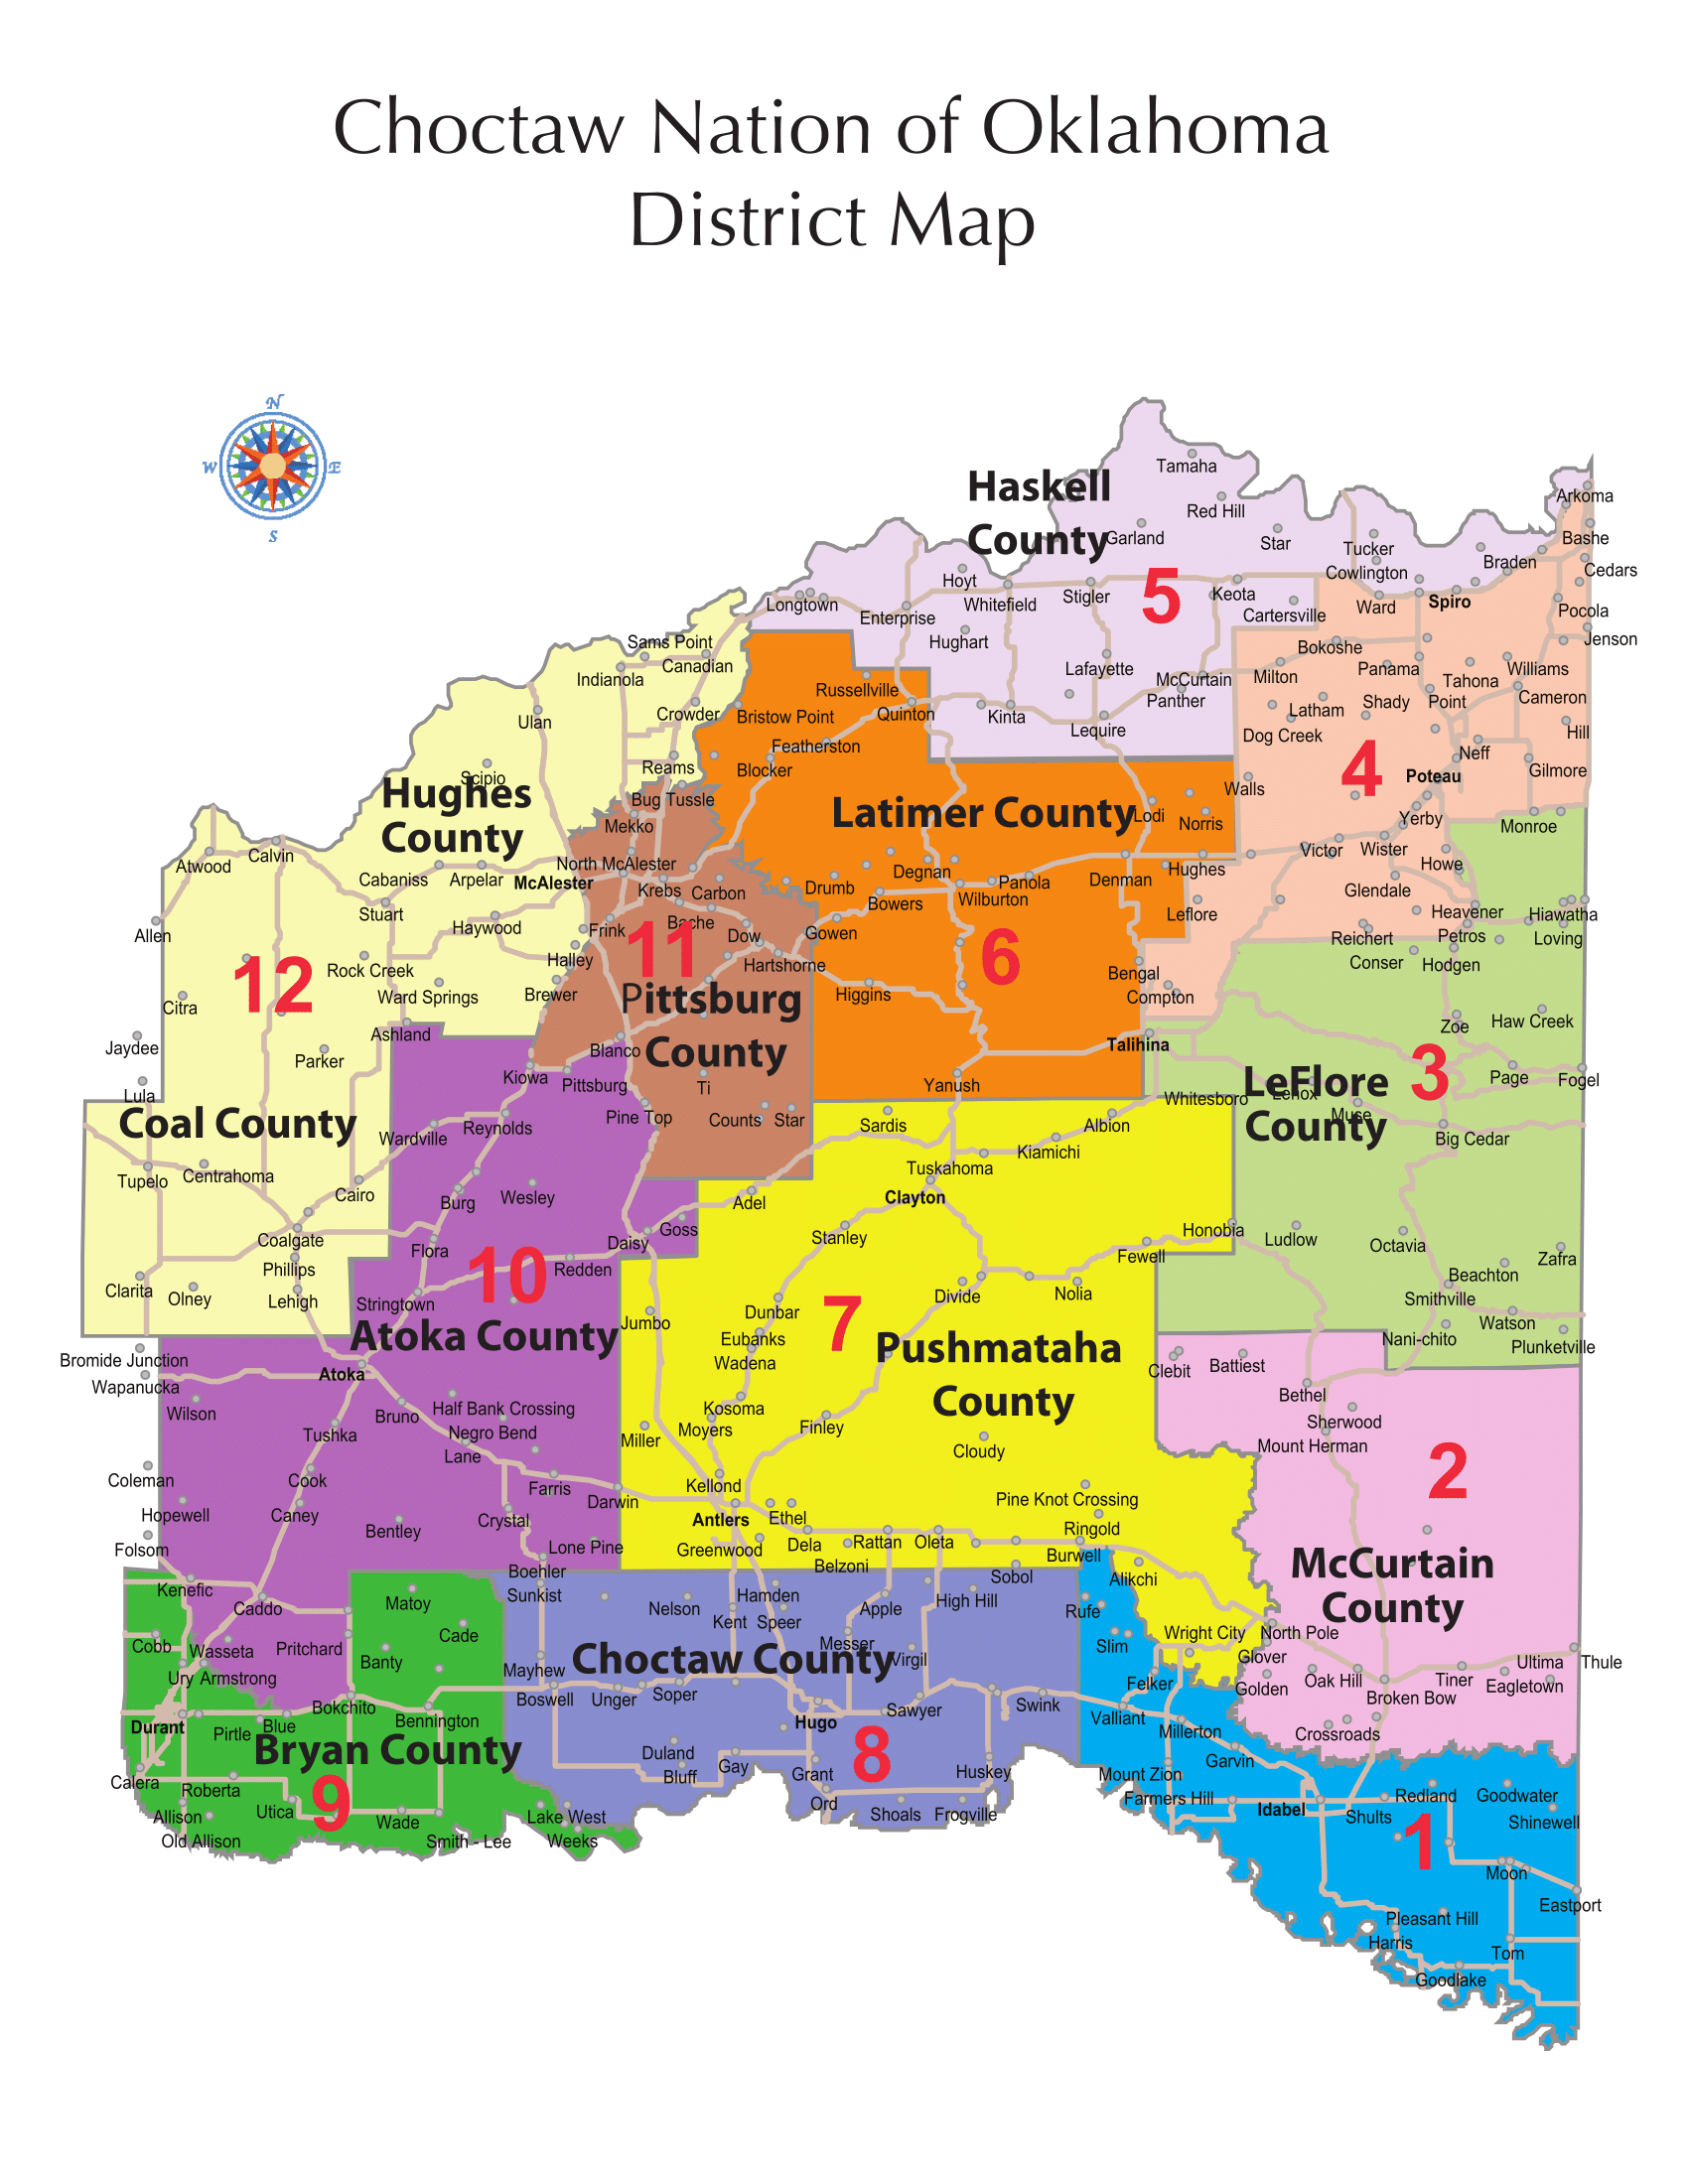 File:Choctaw Nation District map.png   Wikipedia